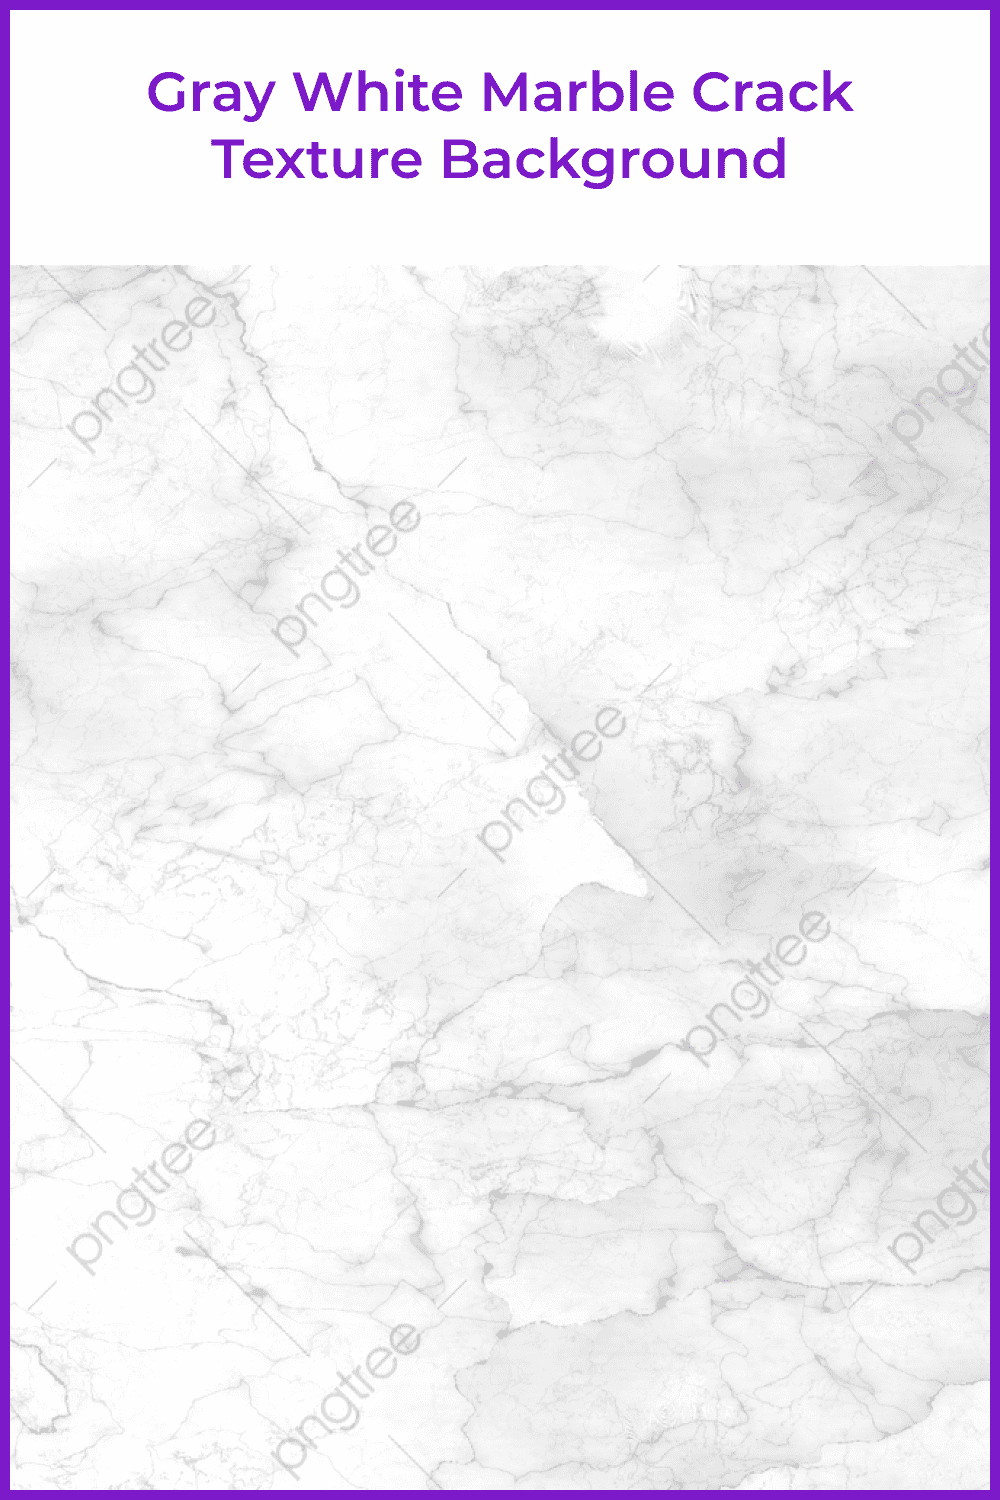 Gray white marble crack texture background.